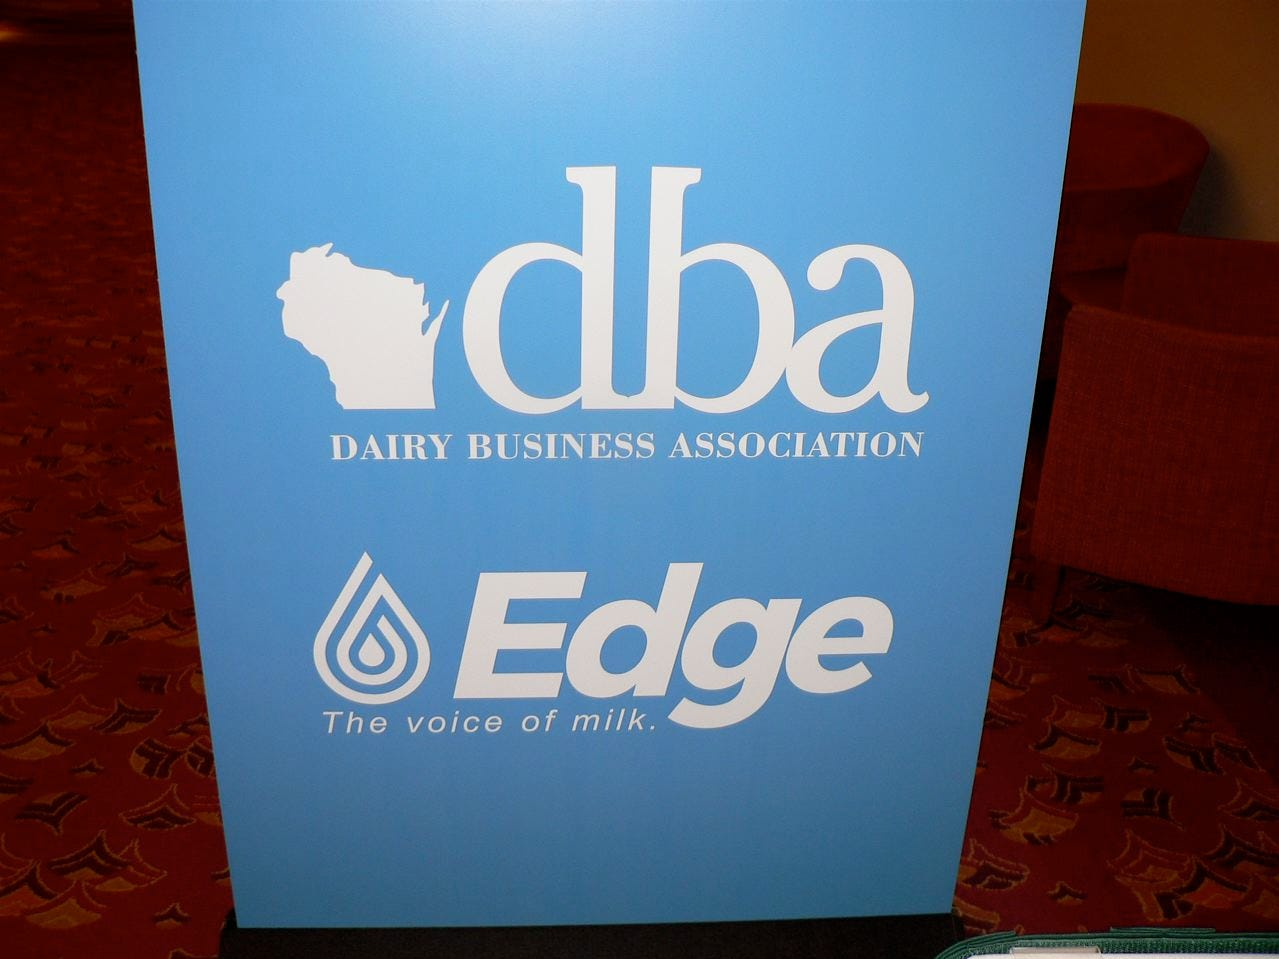 The Dairy Business Association's sponsorship of Dairy Strong dates back to 1999.